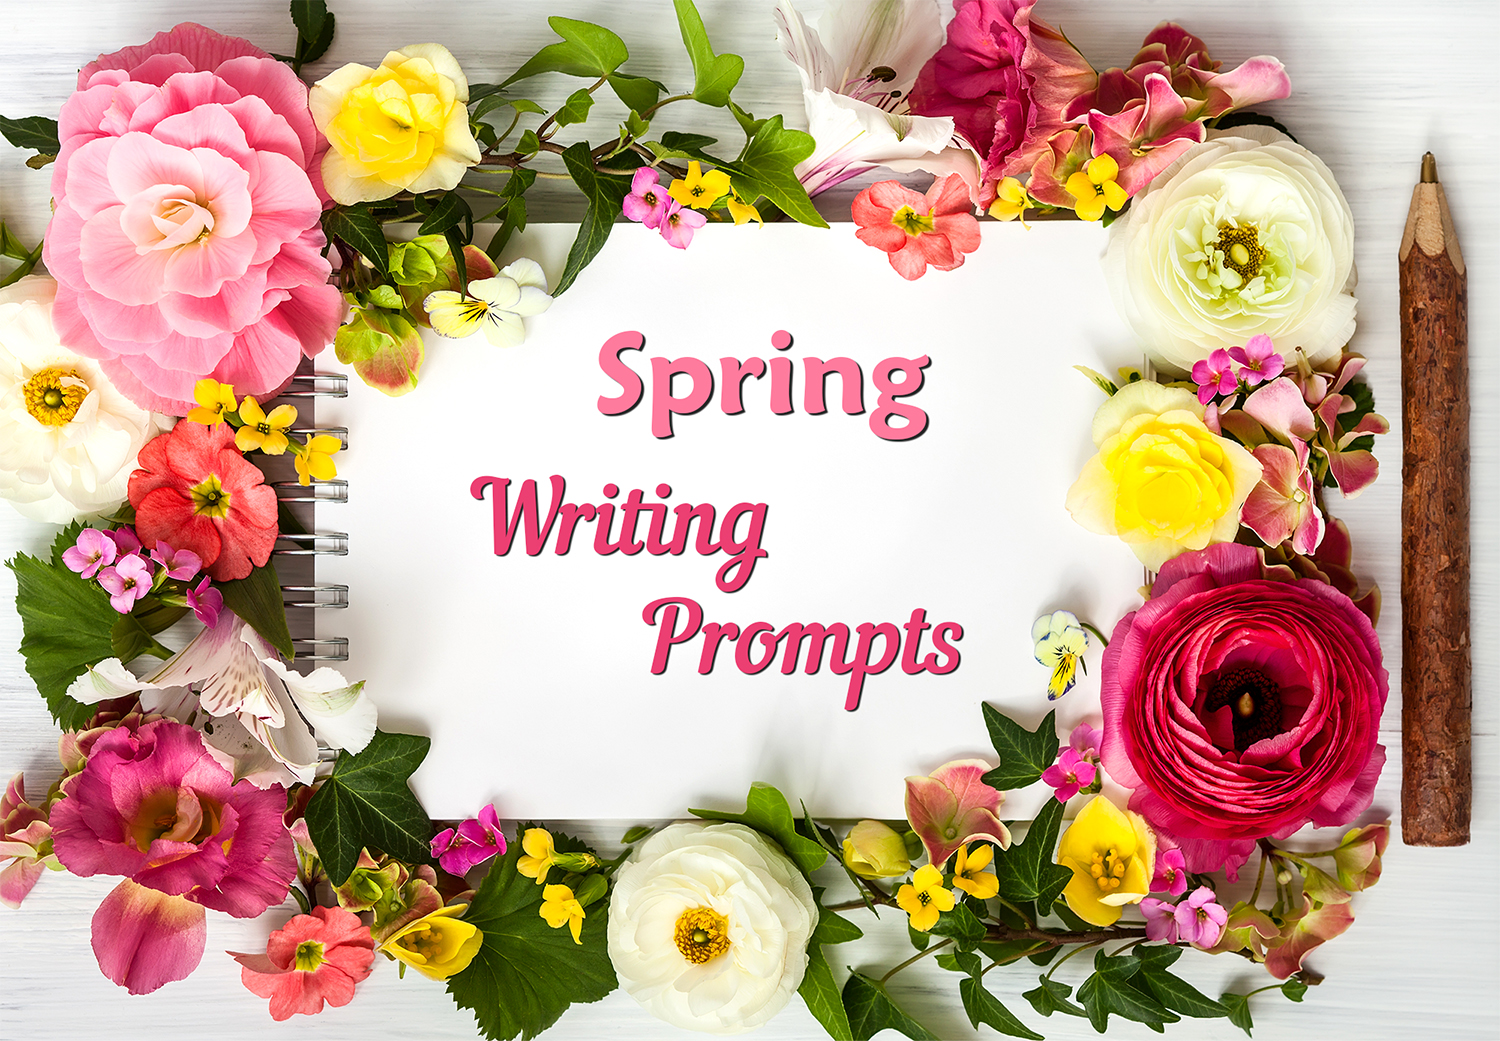 Creative Writing Prompts!